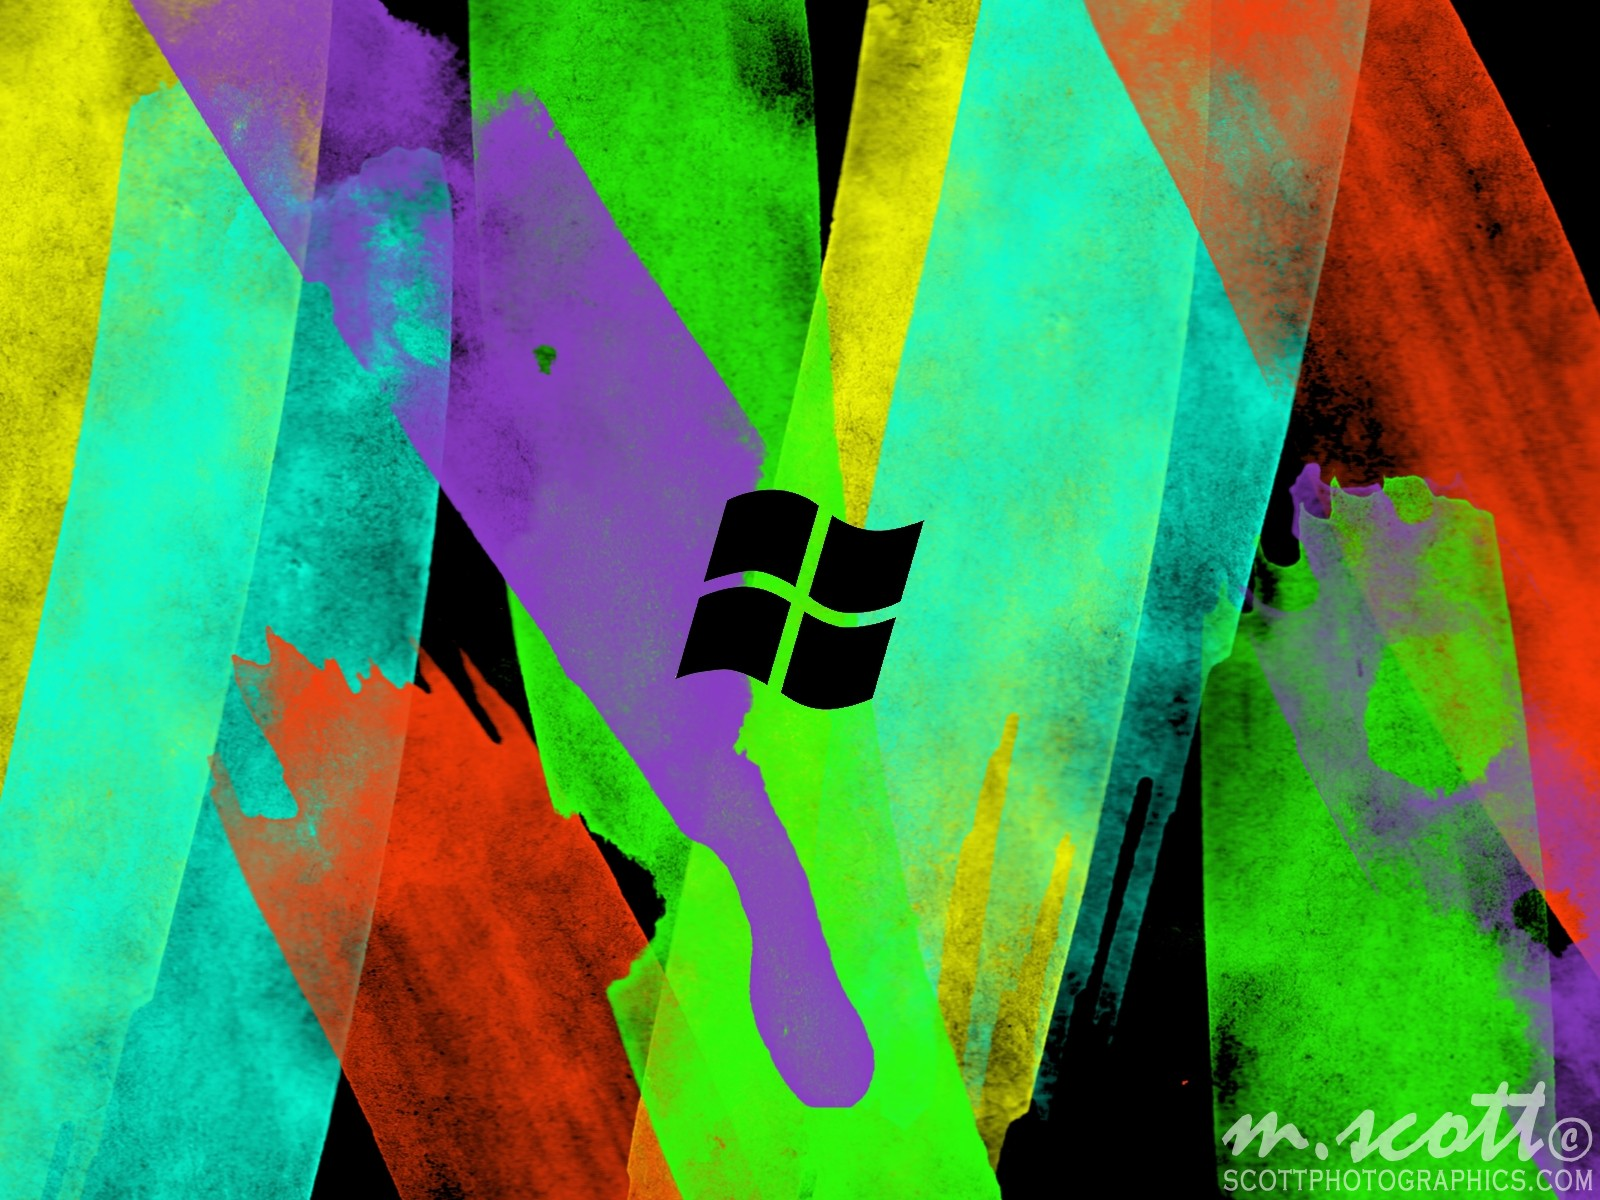 http://www.images.scottphotographics.com/how-to-make-a-water-colour-ubuntu-wallpaper-in-gimp/water-colour-gimp-colours-windows-logo.jpg